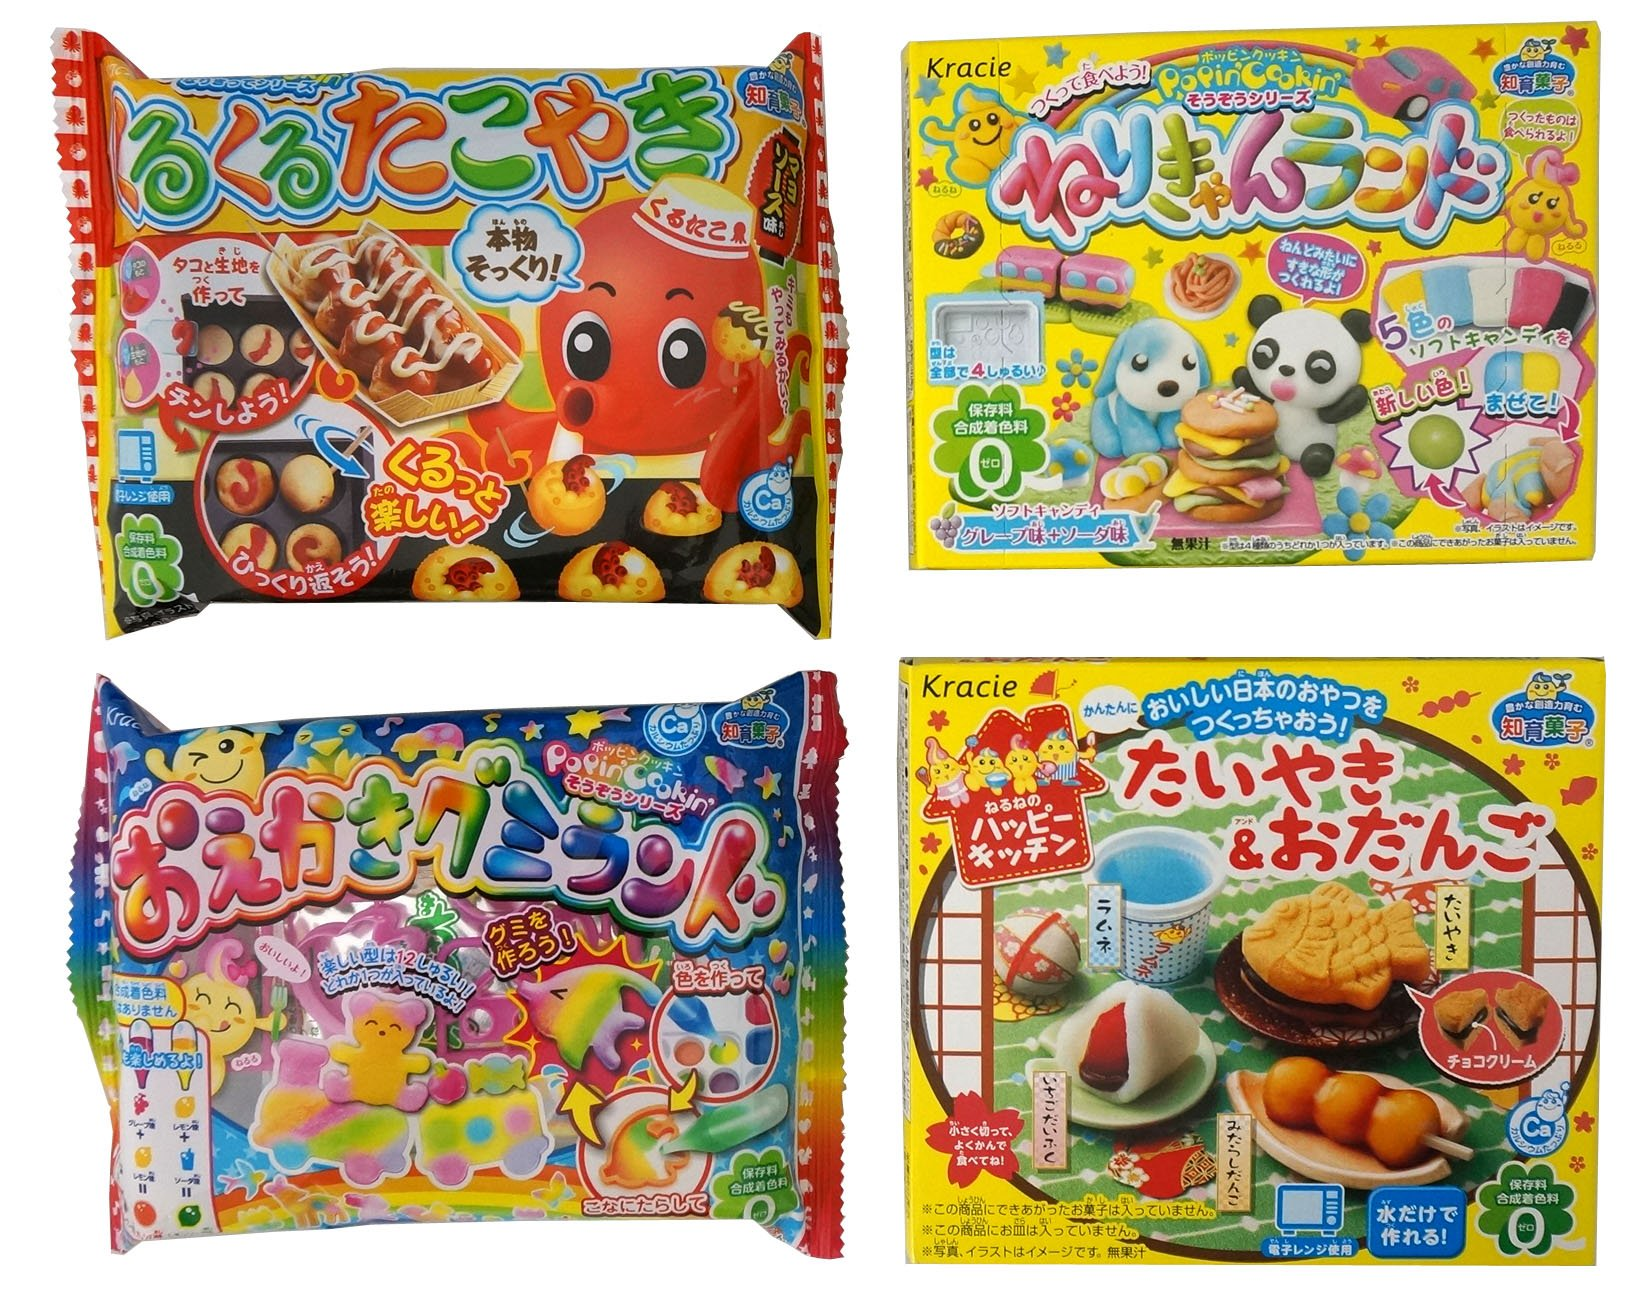 Assortment of 4 Kracie Popin Cookin & Happy Kitchen Kits ''NT6000247'' 4 Packs of DIY Candy Kit Ninjapo Package